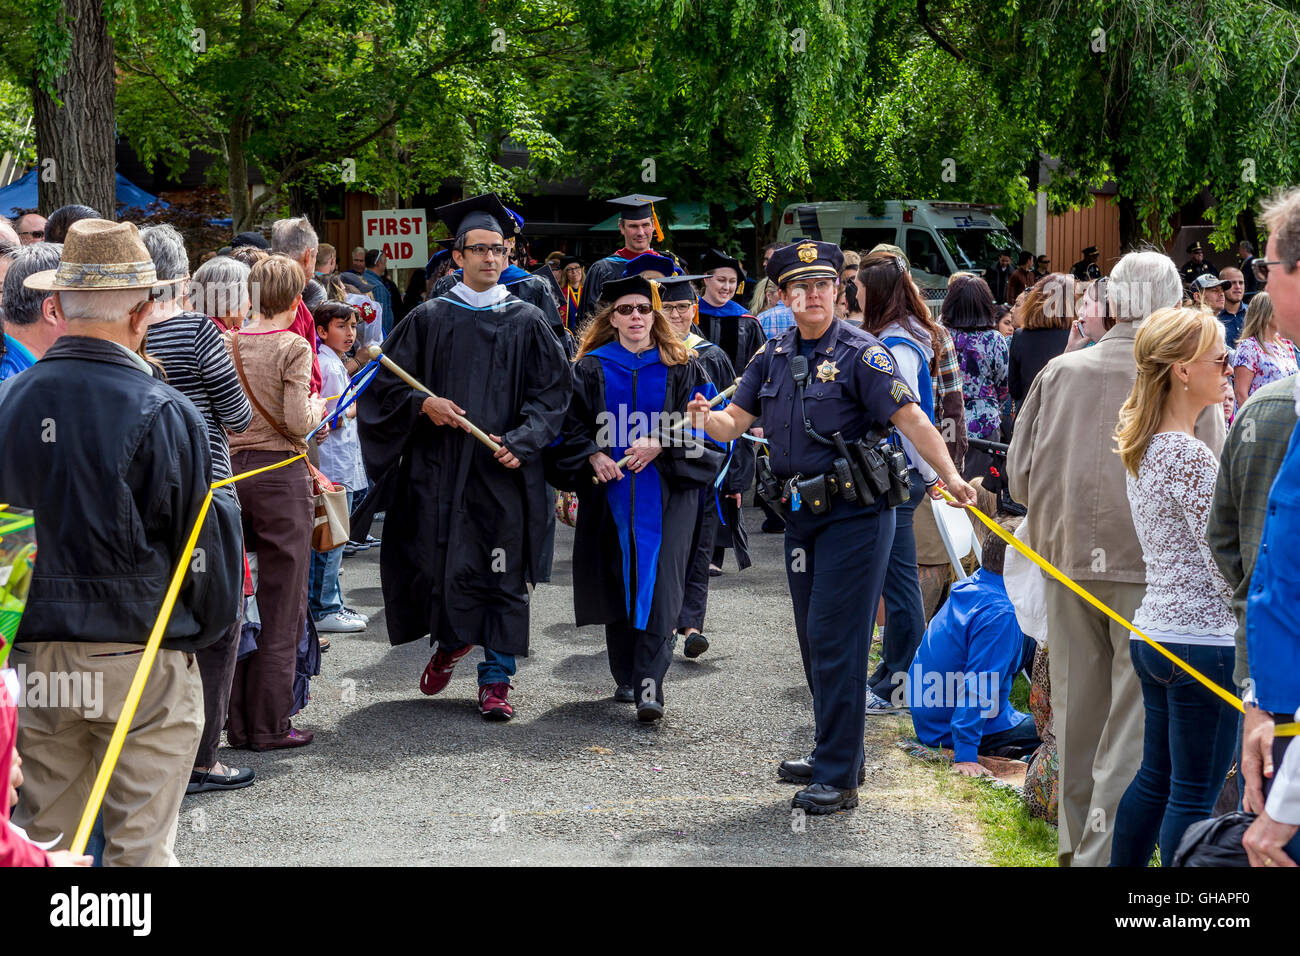 University graduation ceremony, graduation ceremony, Sonoma State University, city of Rohnert Park, California - Stock Image